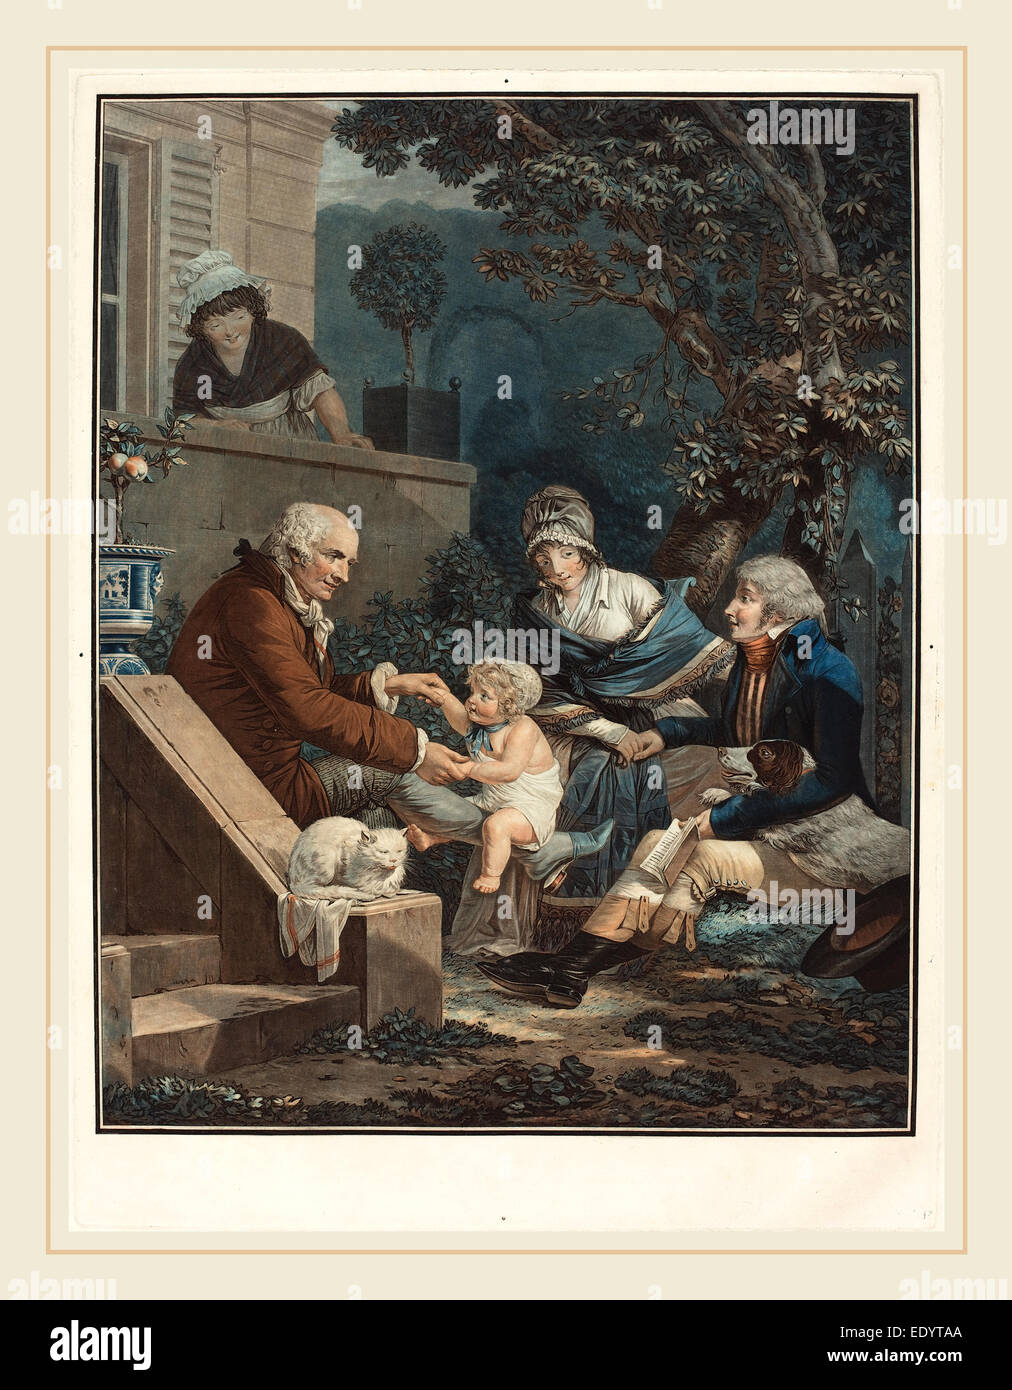 Philibert-Louis Debucourt, French (1755-1832), Les Plaisirs paternels (Paternal Pleasures), c. 1797, etching and - Stock Image